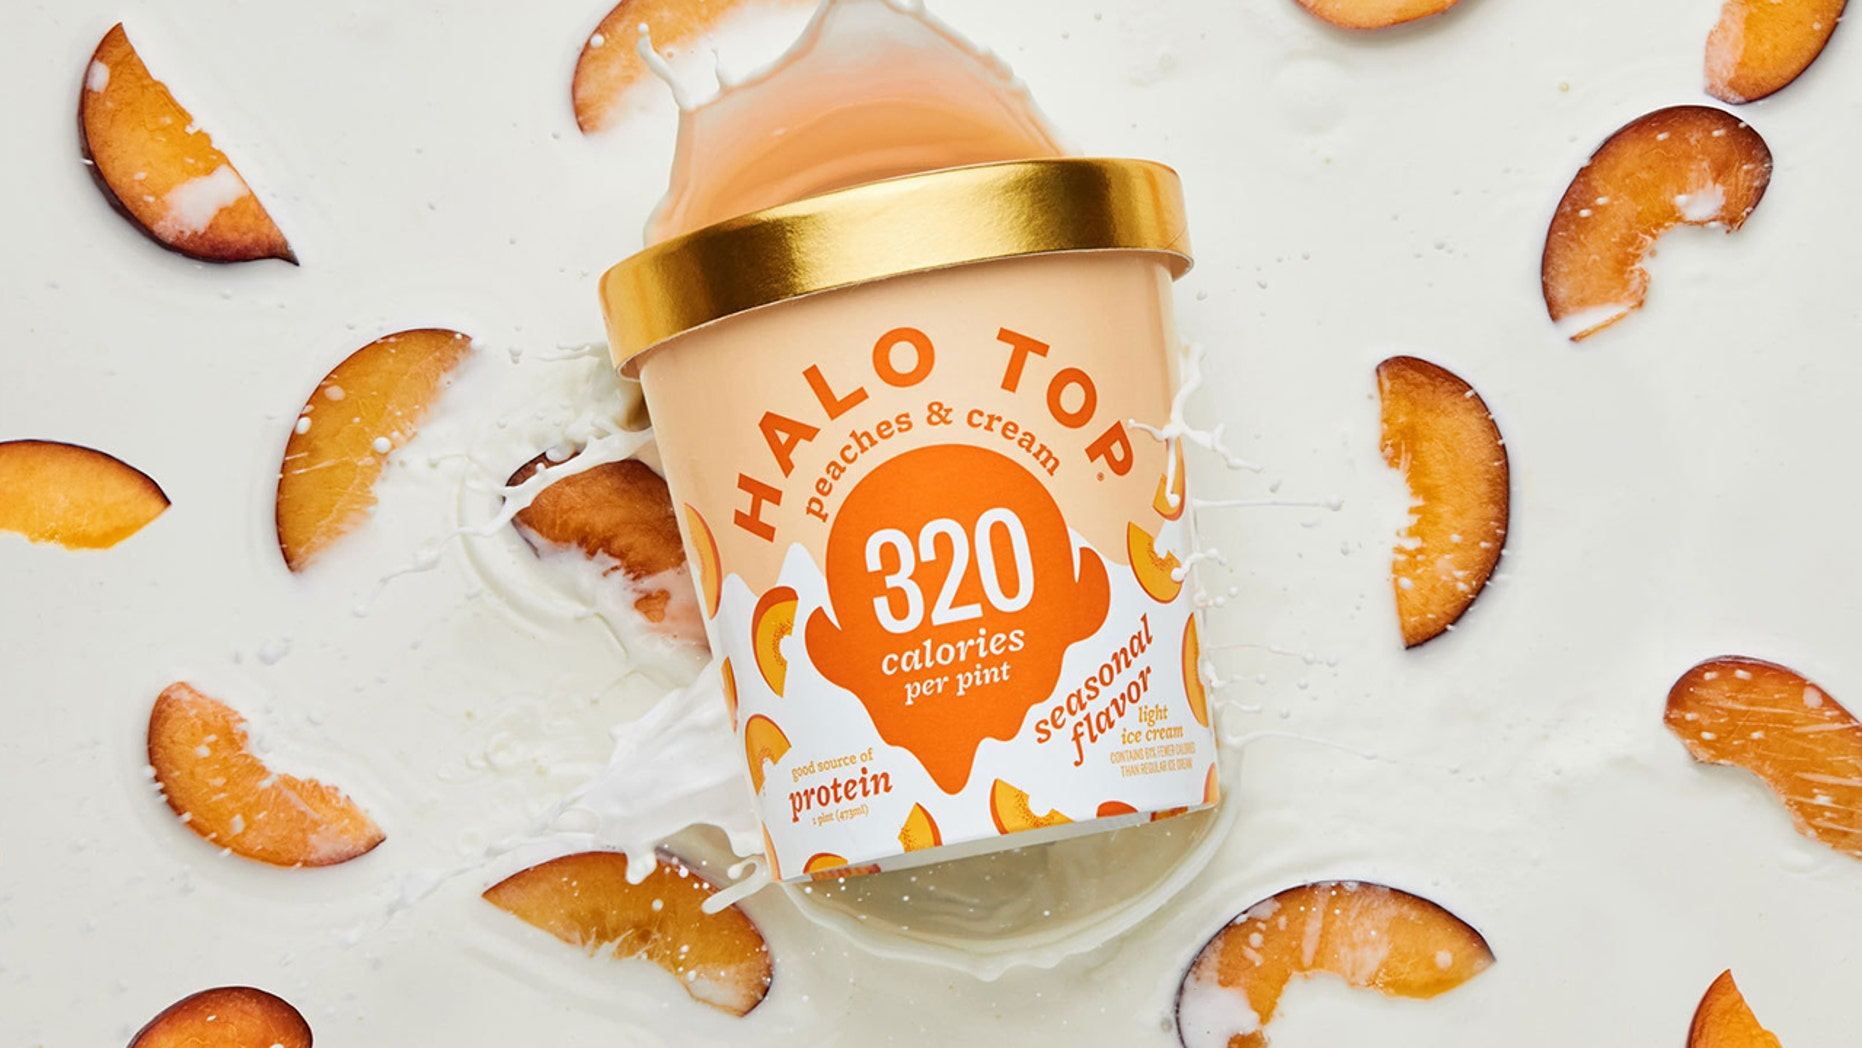 Halo Top Is Dramatically Under Filling Pints Lawsuit Alleges